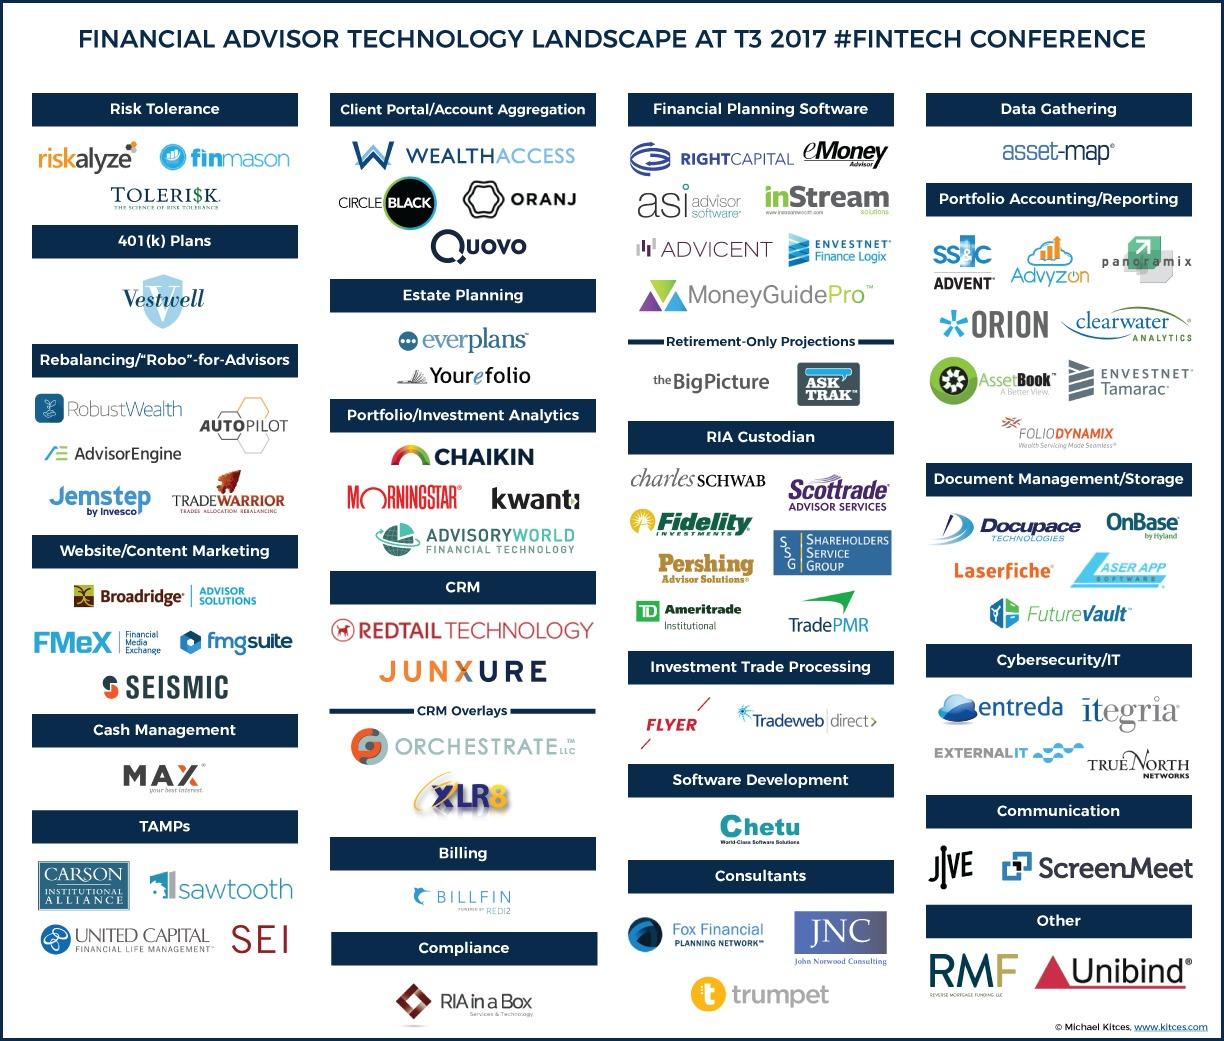 Financial Advisor Technology Landscape At T3 2017